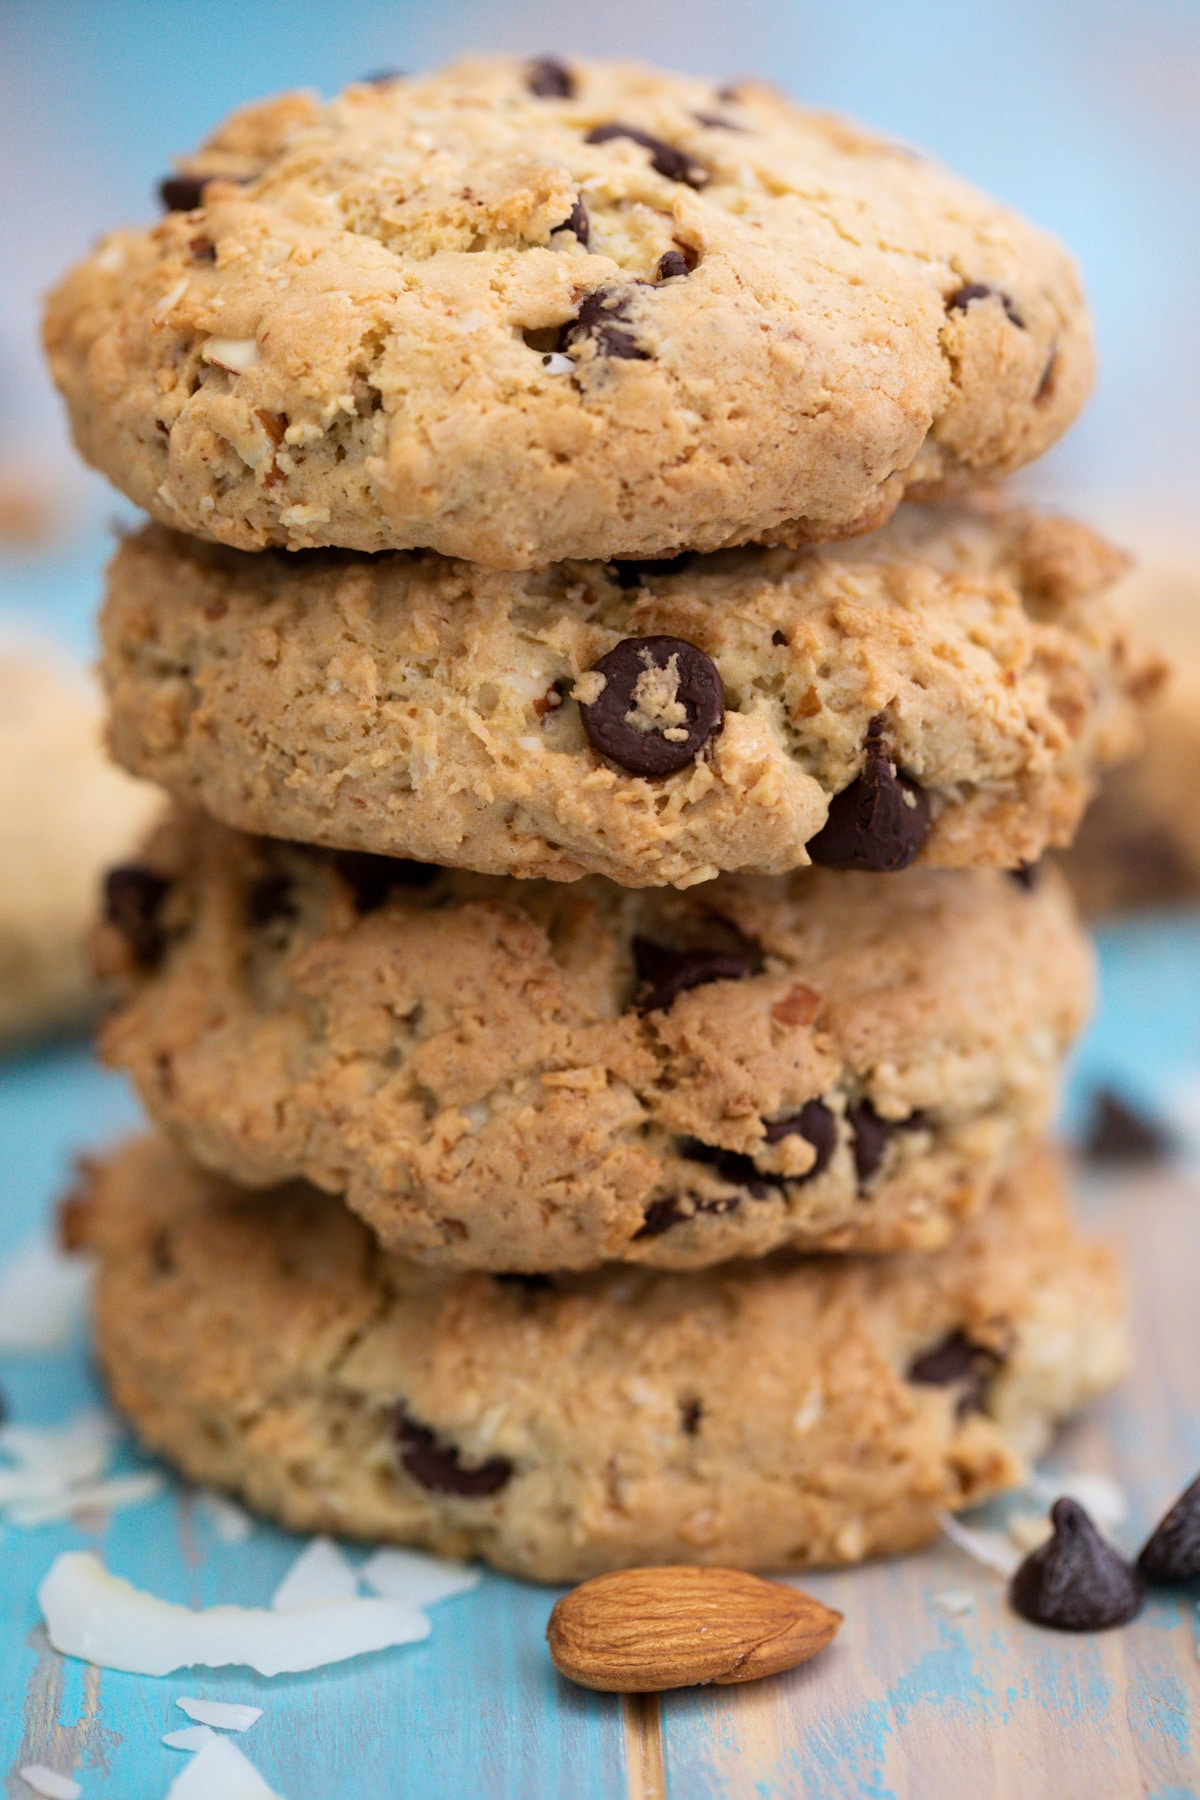 Stack of almond joy cookies on table